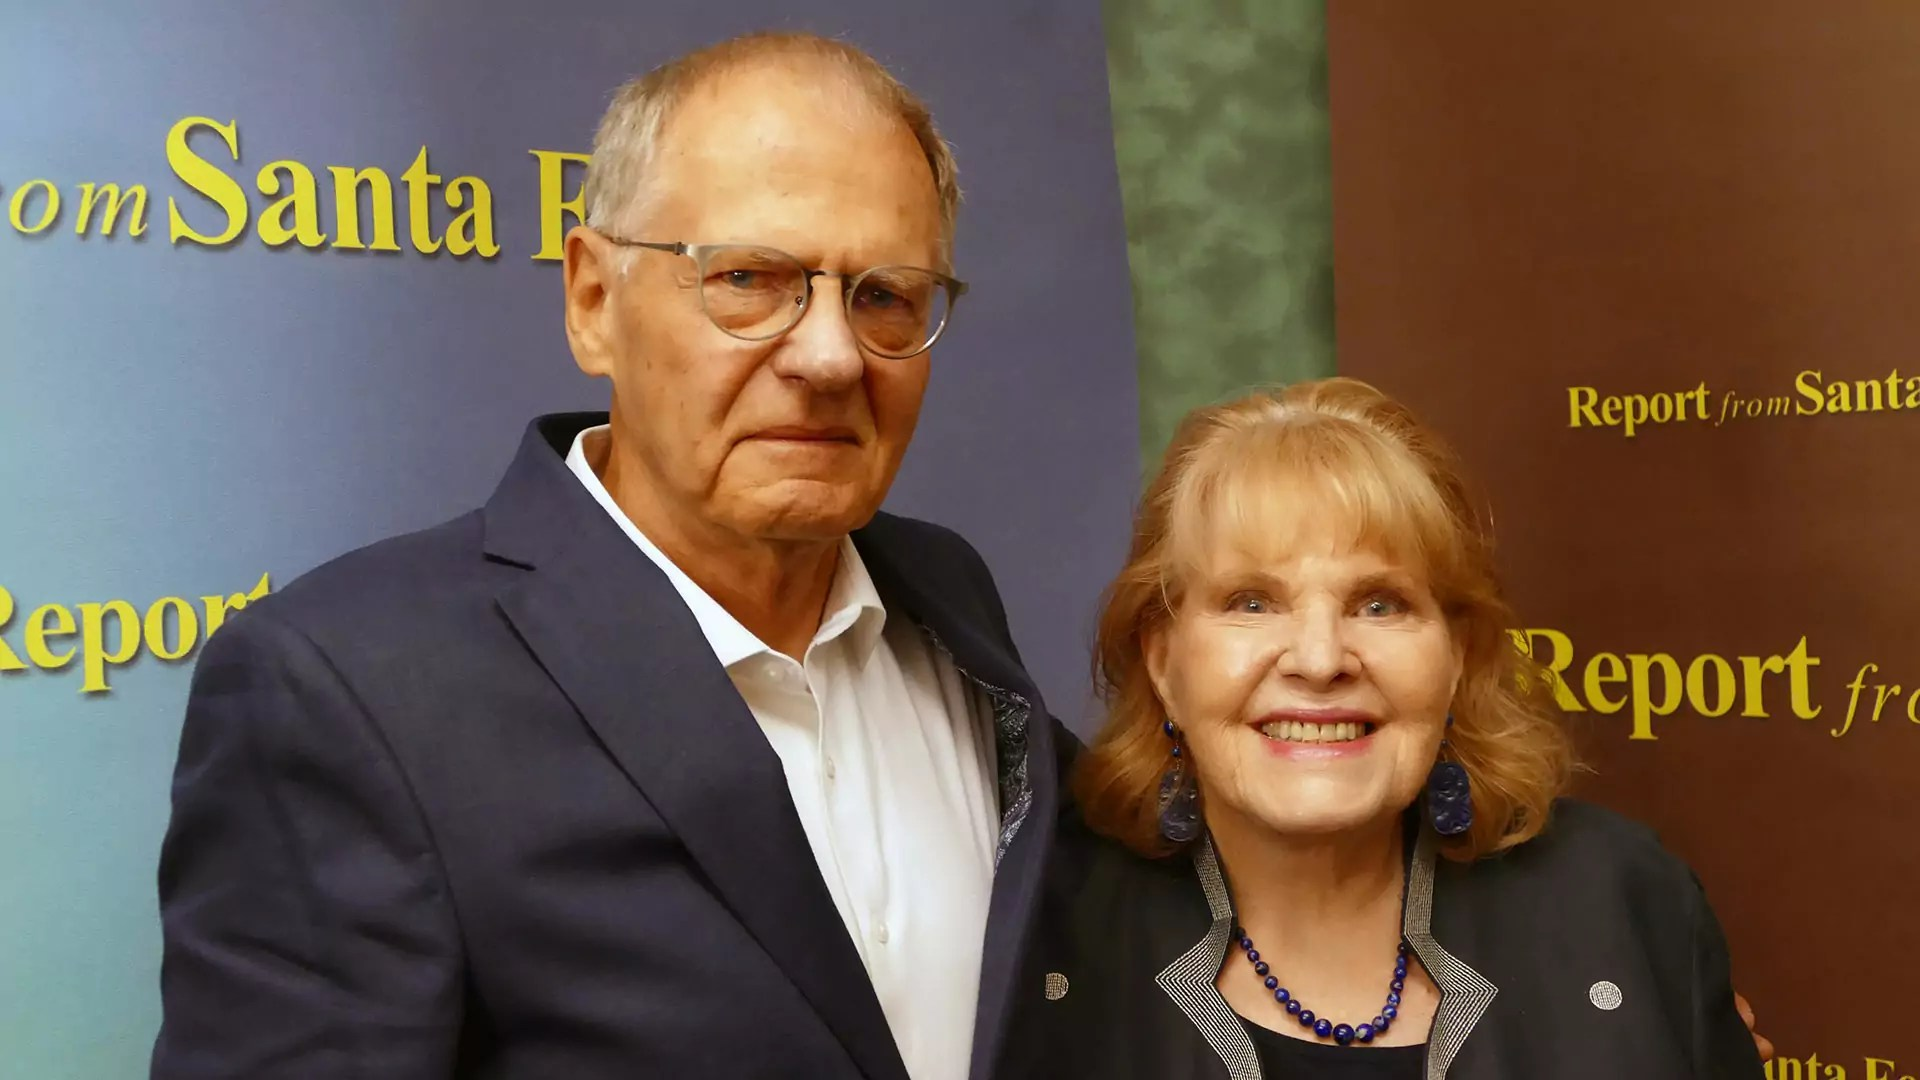 Michael McGarrity (left) and Lorene Mills (right) pose for a photo.